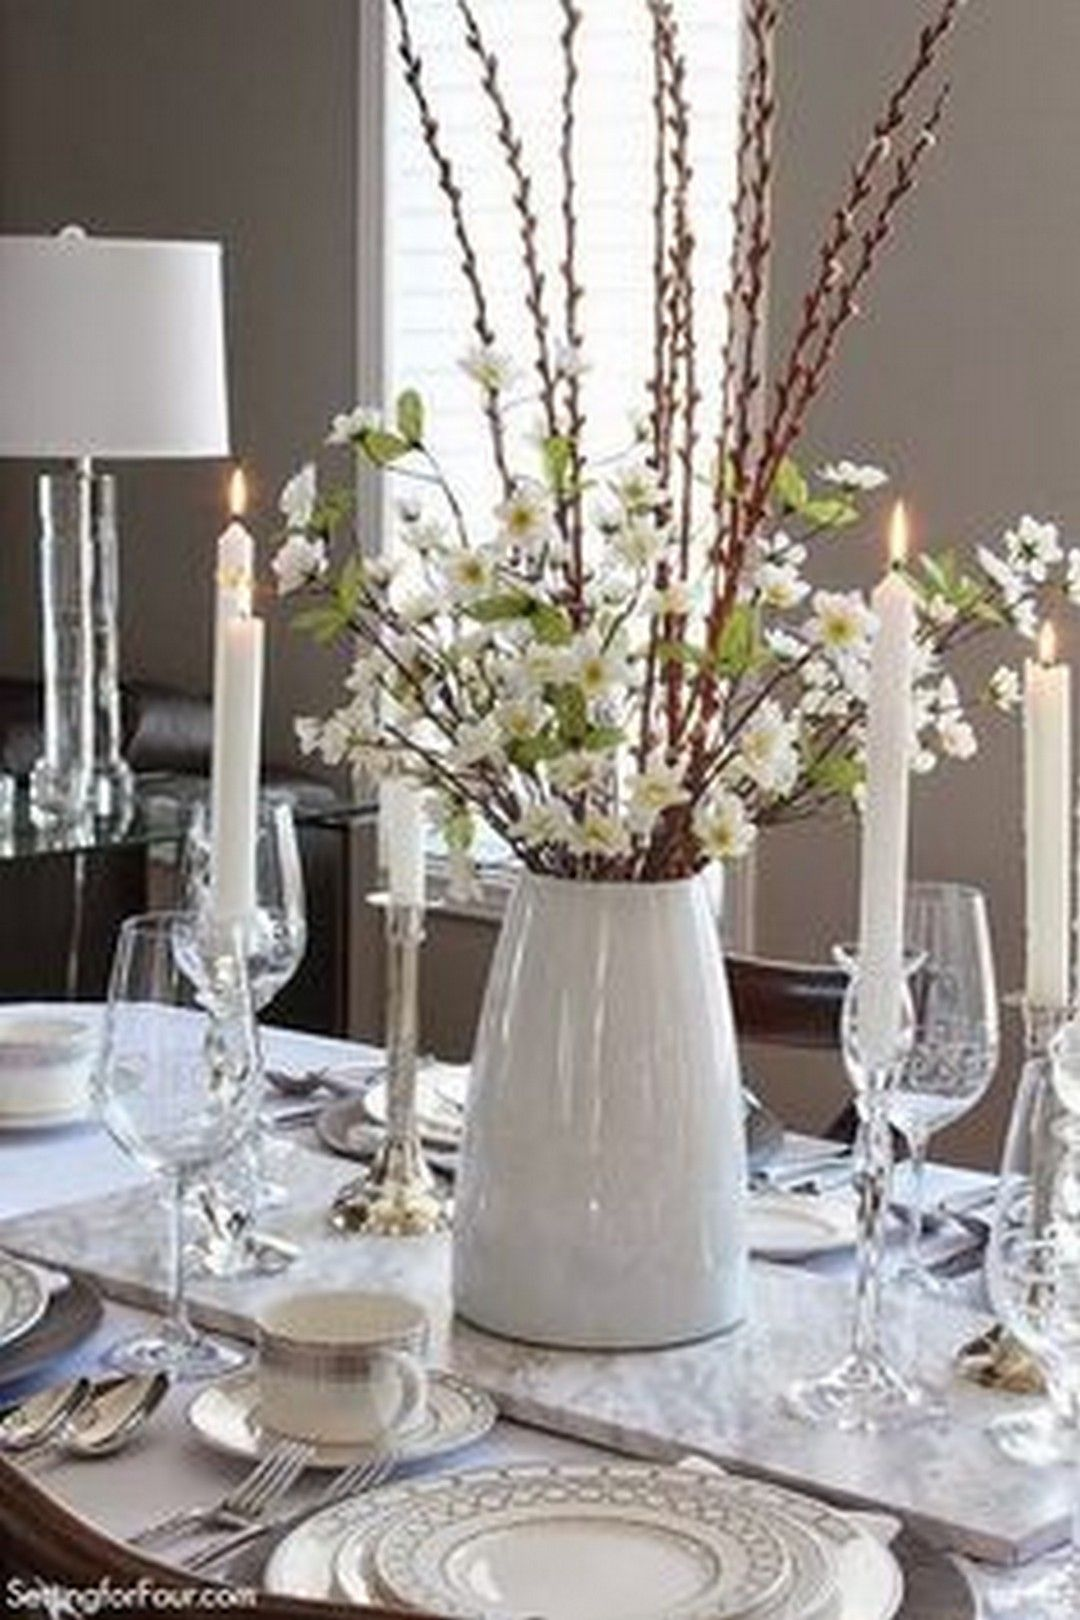 10 Gorgeous Spring Home Decors That You Can Easily Copy In Any House Goodnewsarchitecture Spring Table Decor Dining Table Centerpiece Dining Room Centerpiece